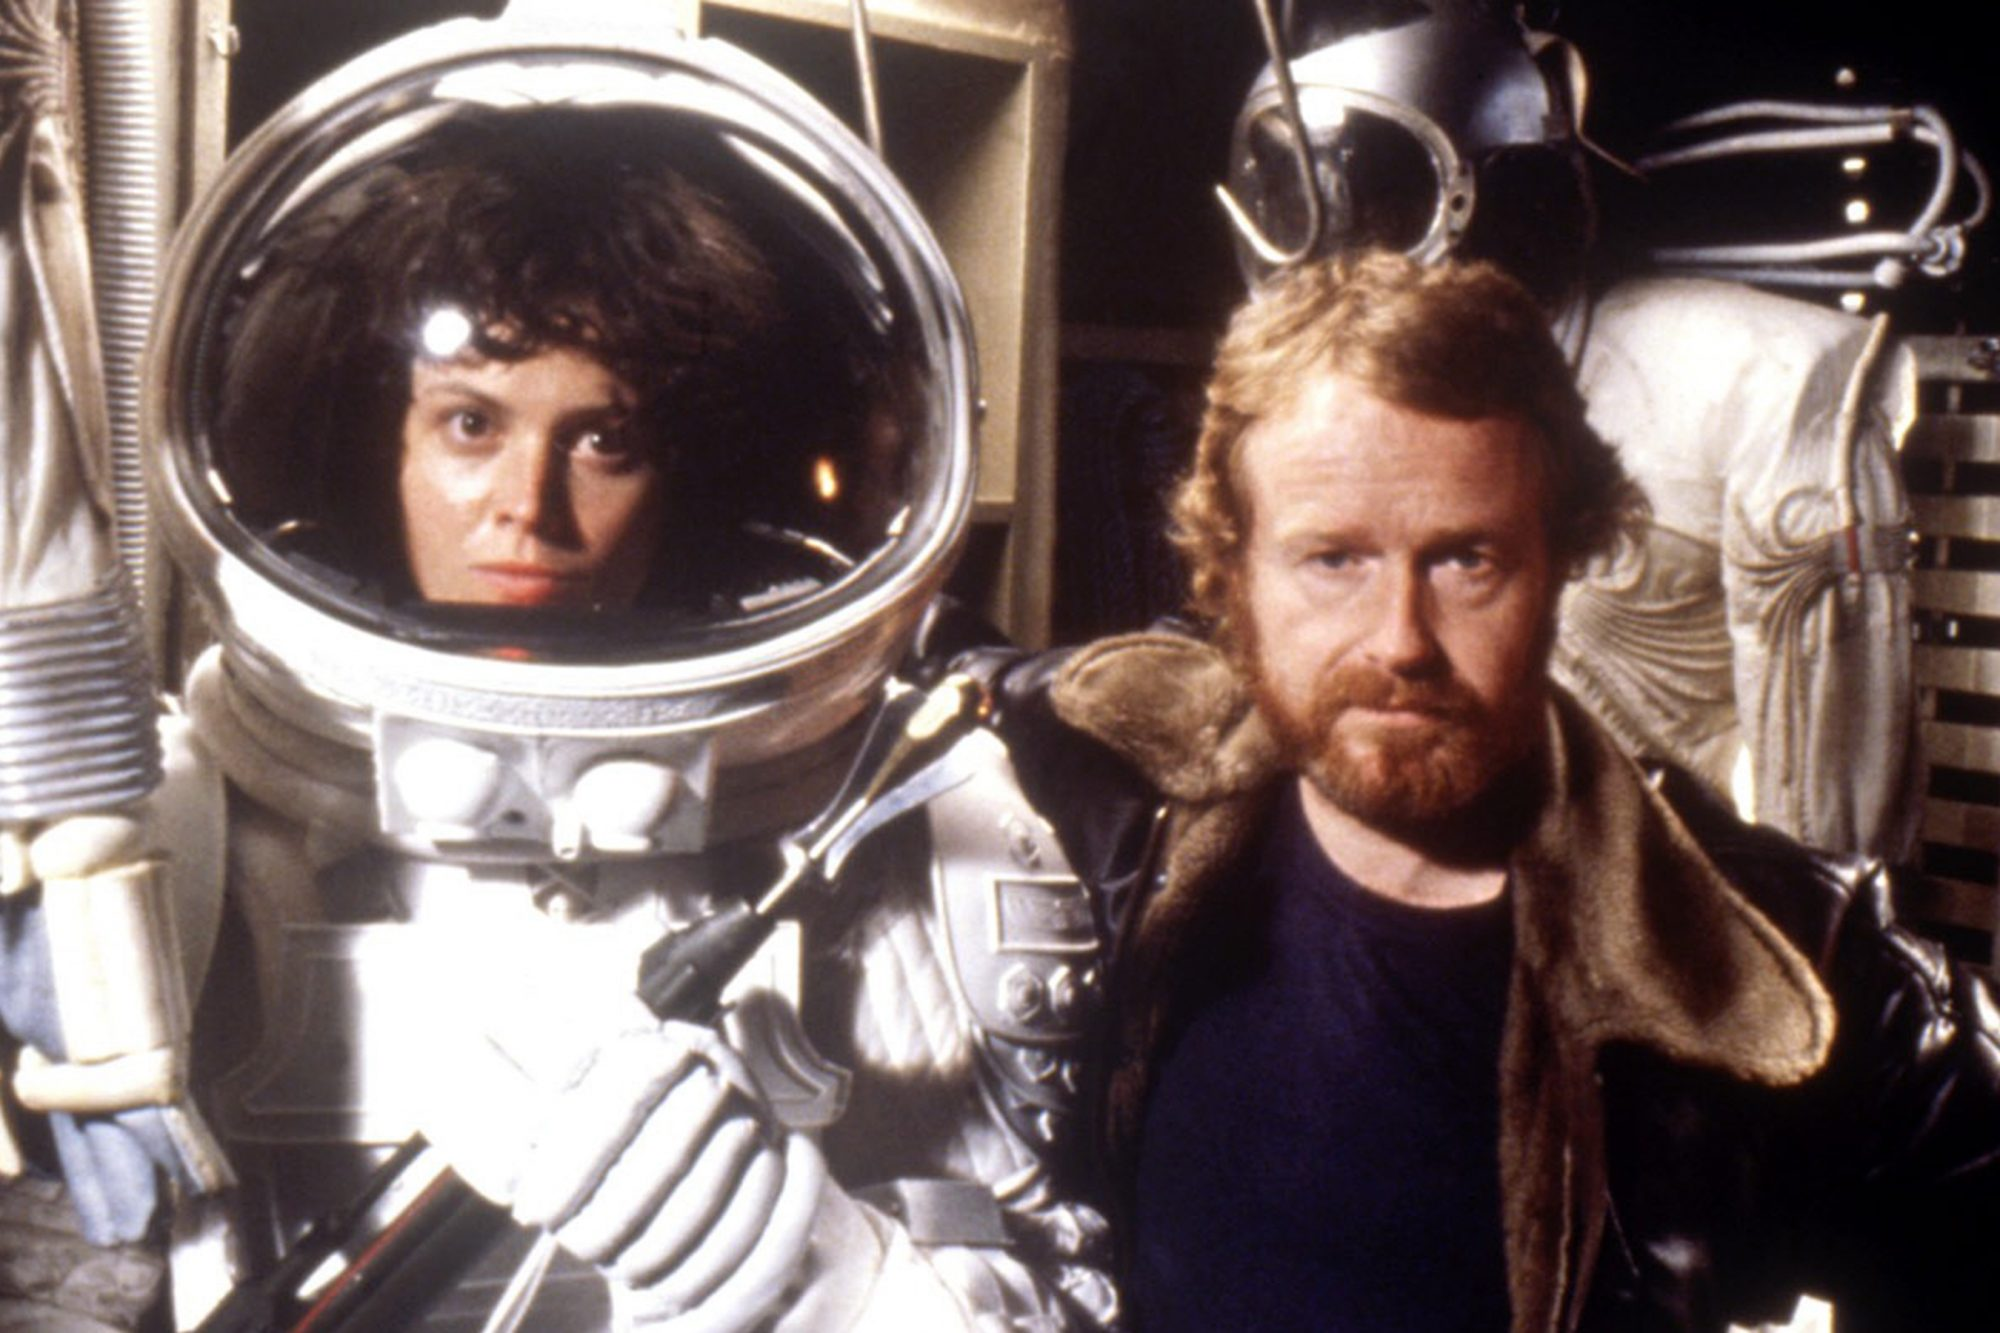 Sigourney Weaver, director Ridley Scott on the set of ALIEN, 1979, TM & Copyright (c) 20th Century F